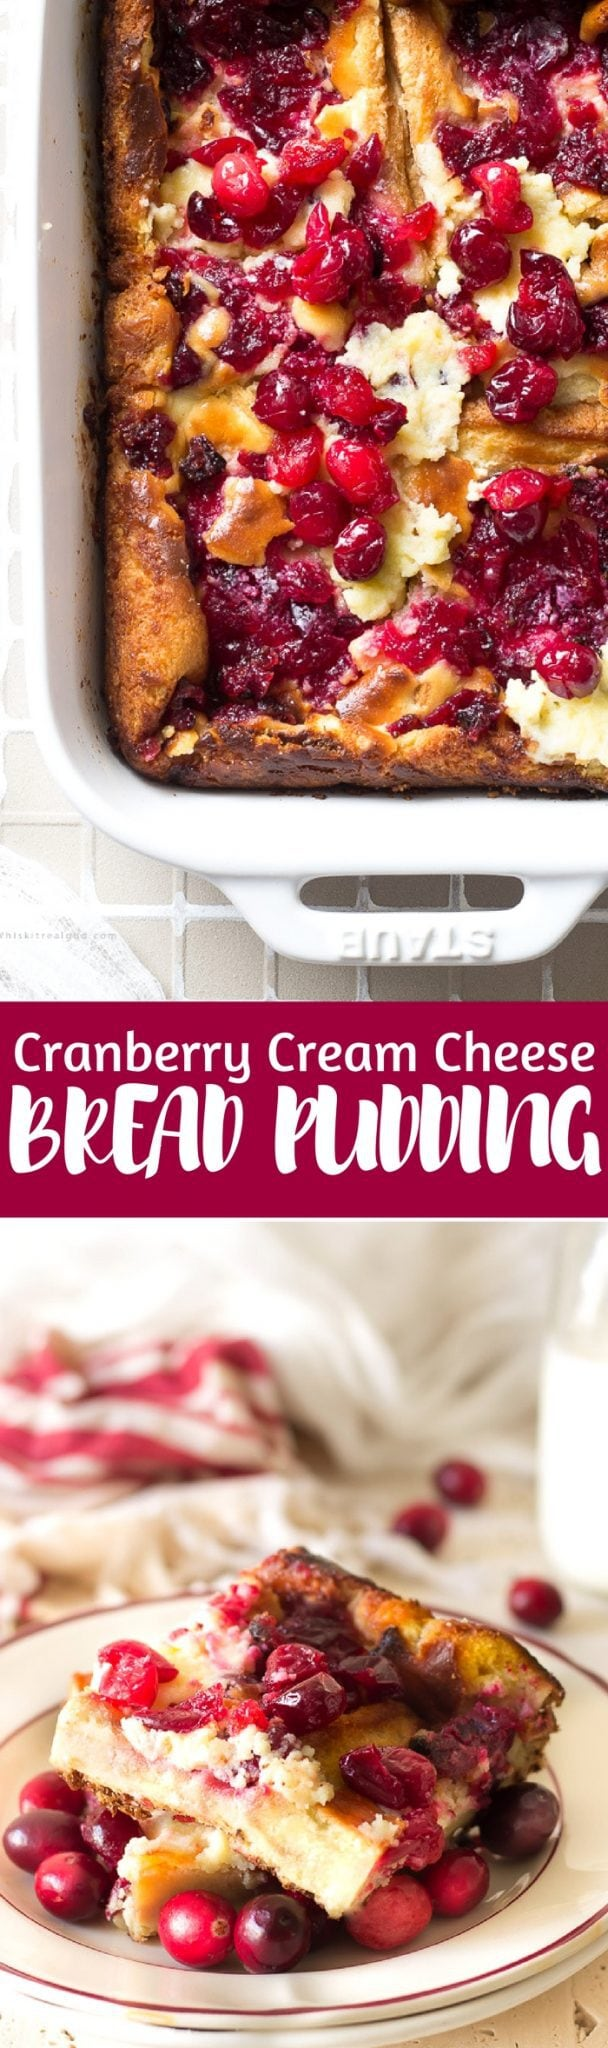 Cranberries and rich sweet cream cheese smothered in a custardy creamy bread pudding. It's a perfect Christmas breakfast or dessert!